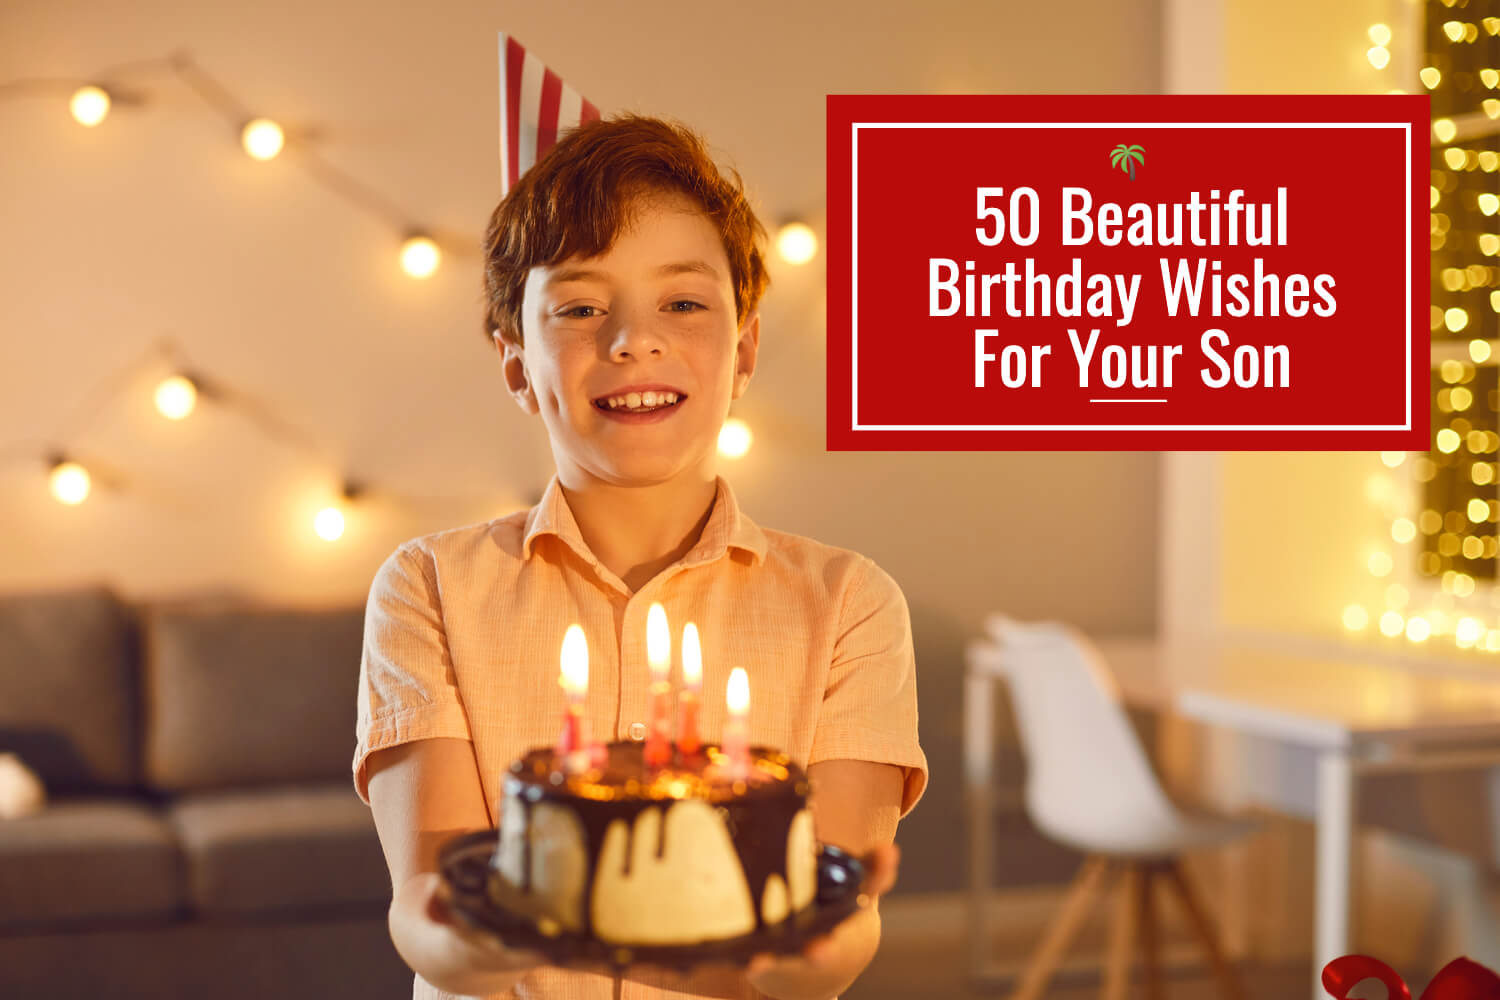 50 Beautiful Birthday Wishes For Your Son